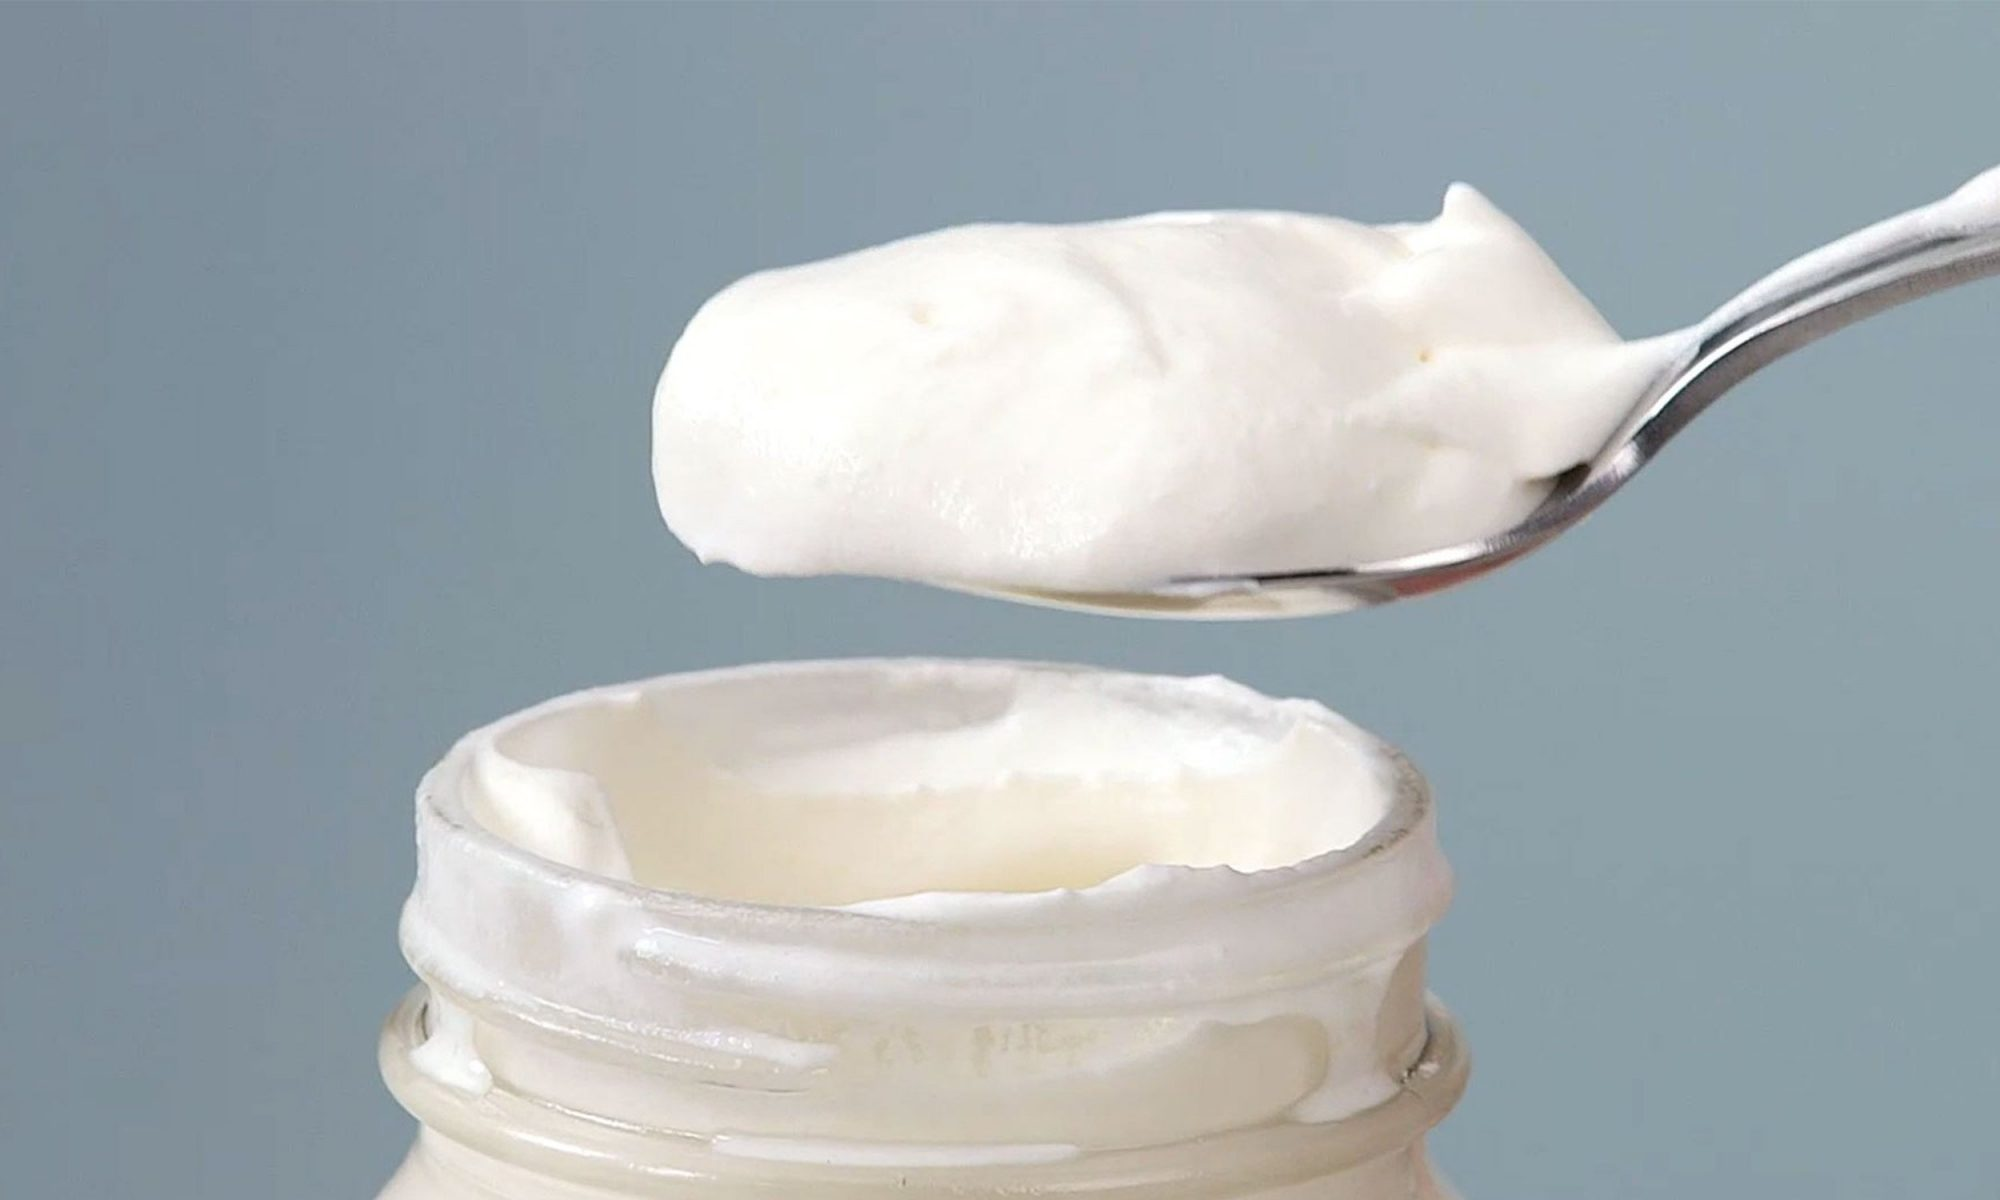 EC: How to Make Whipped Cream in a Mason Jar